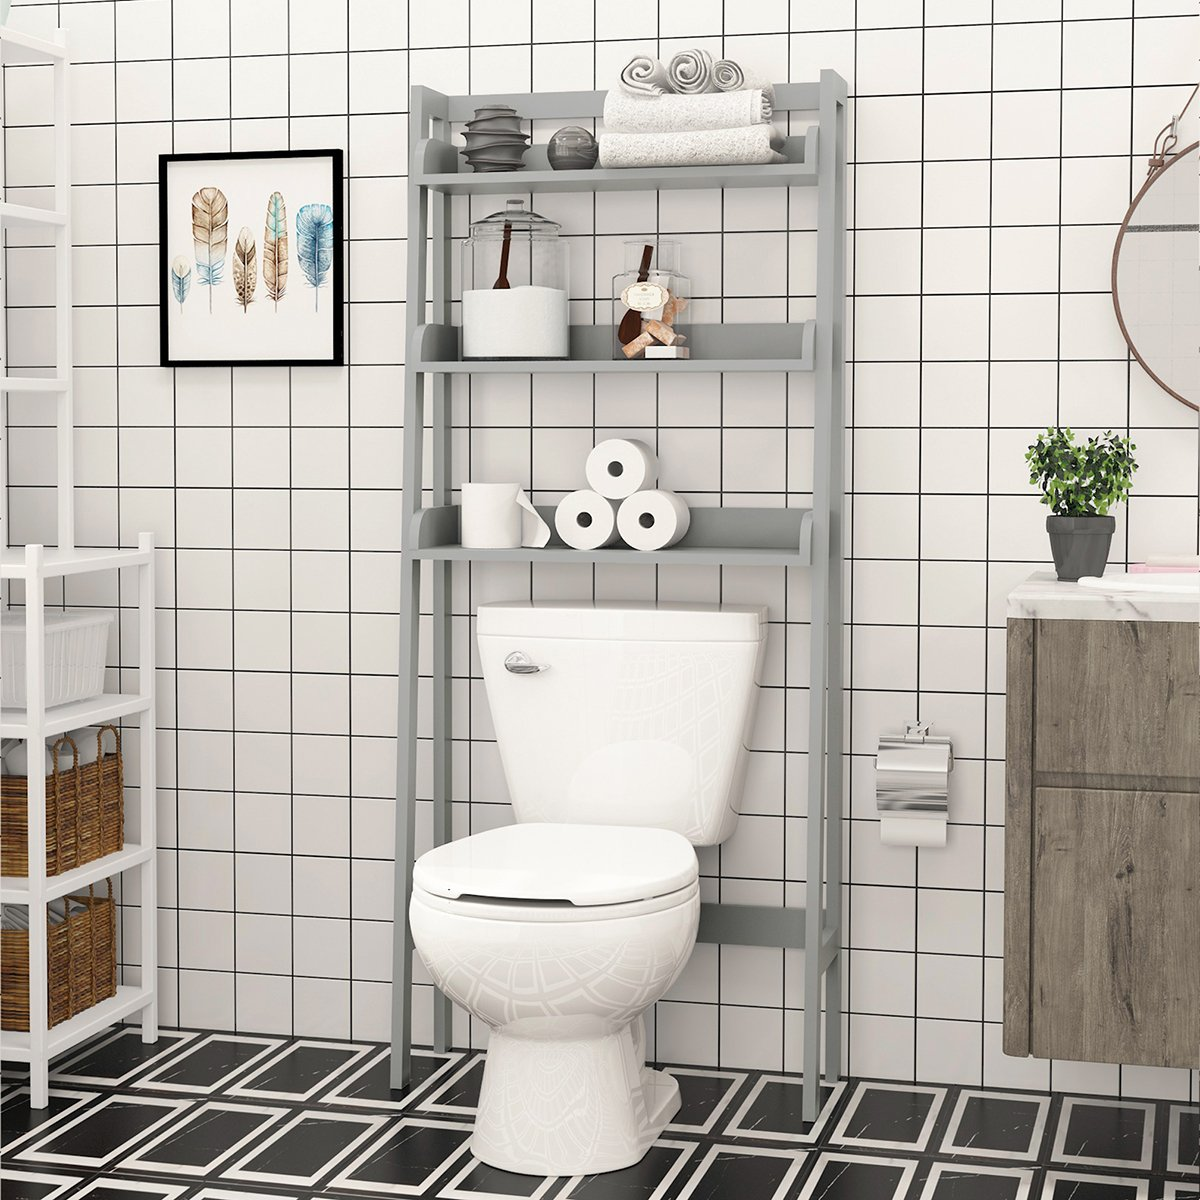 UTEX 3-Shelf Bathroom Organizer Over The Toilet, Bathroom Spacesaver (Espresso) SS17-UTX102E